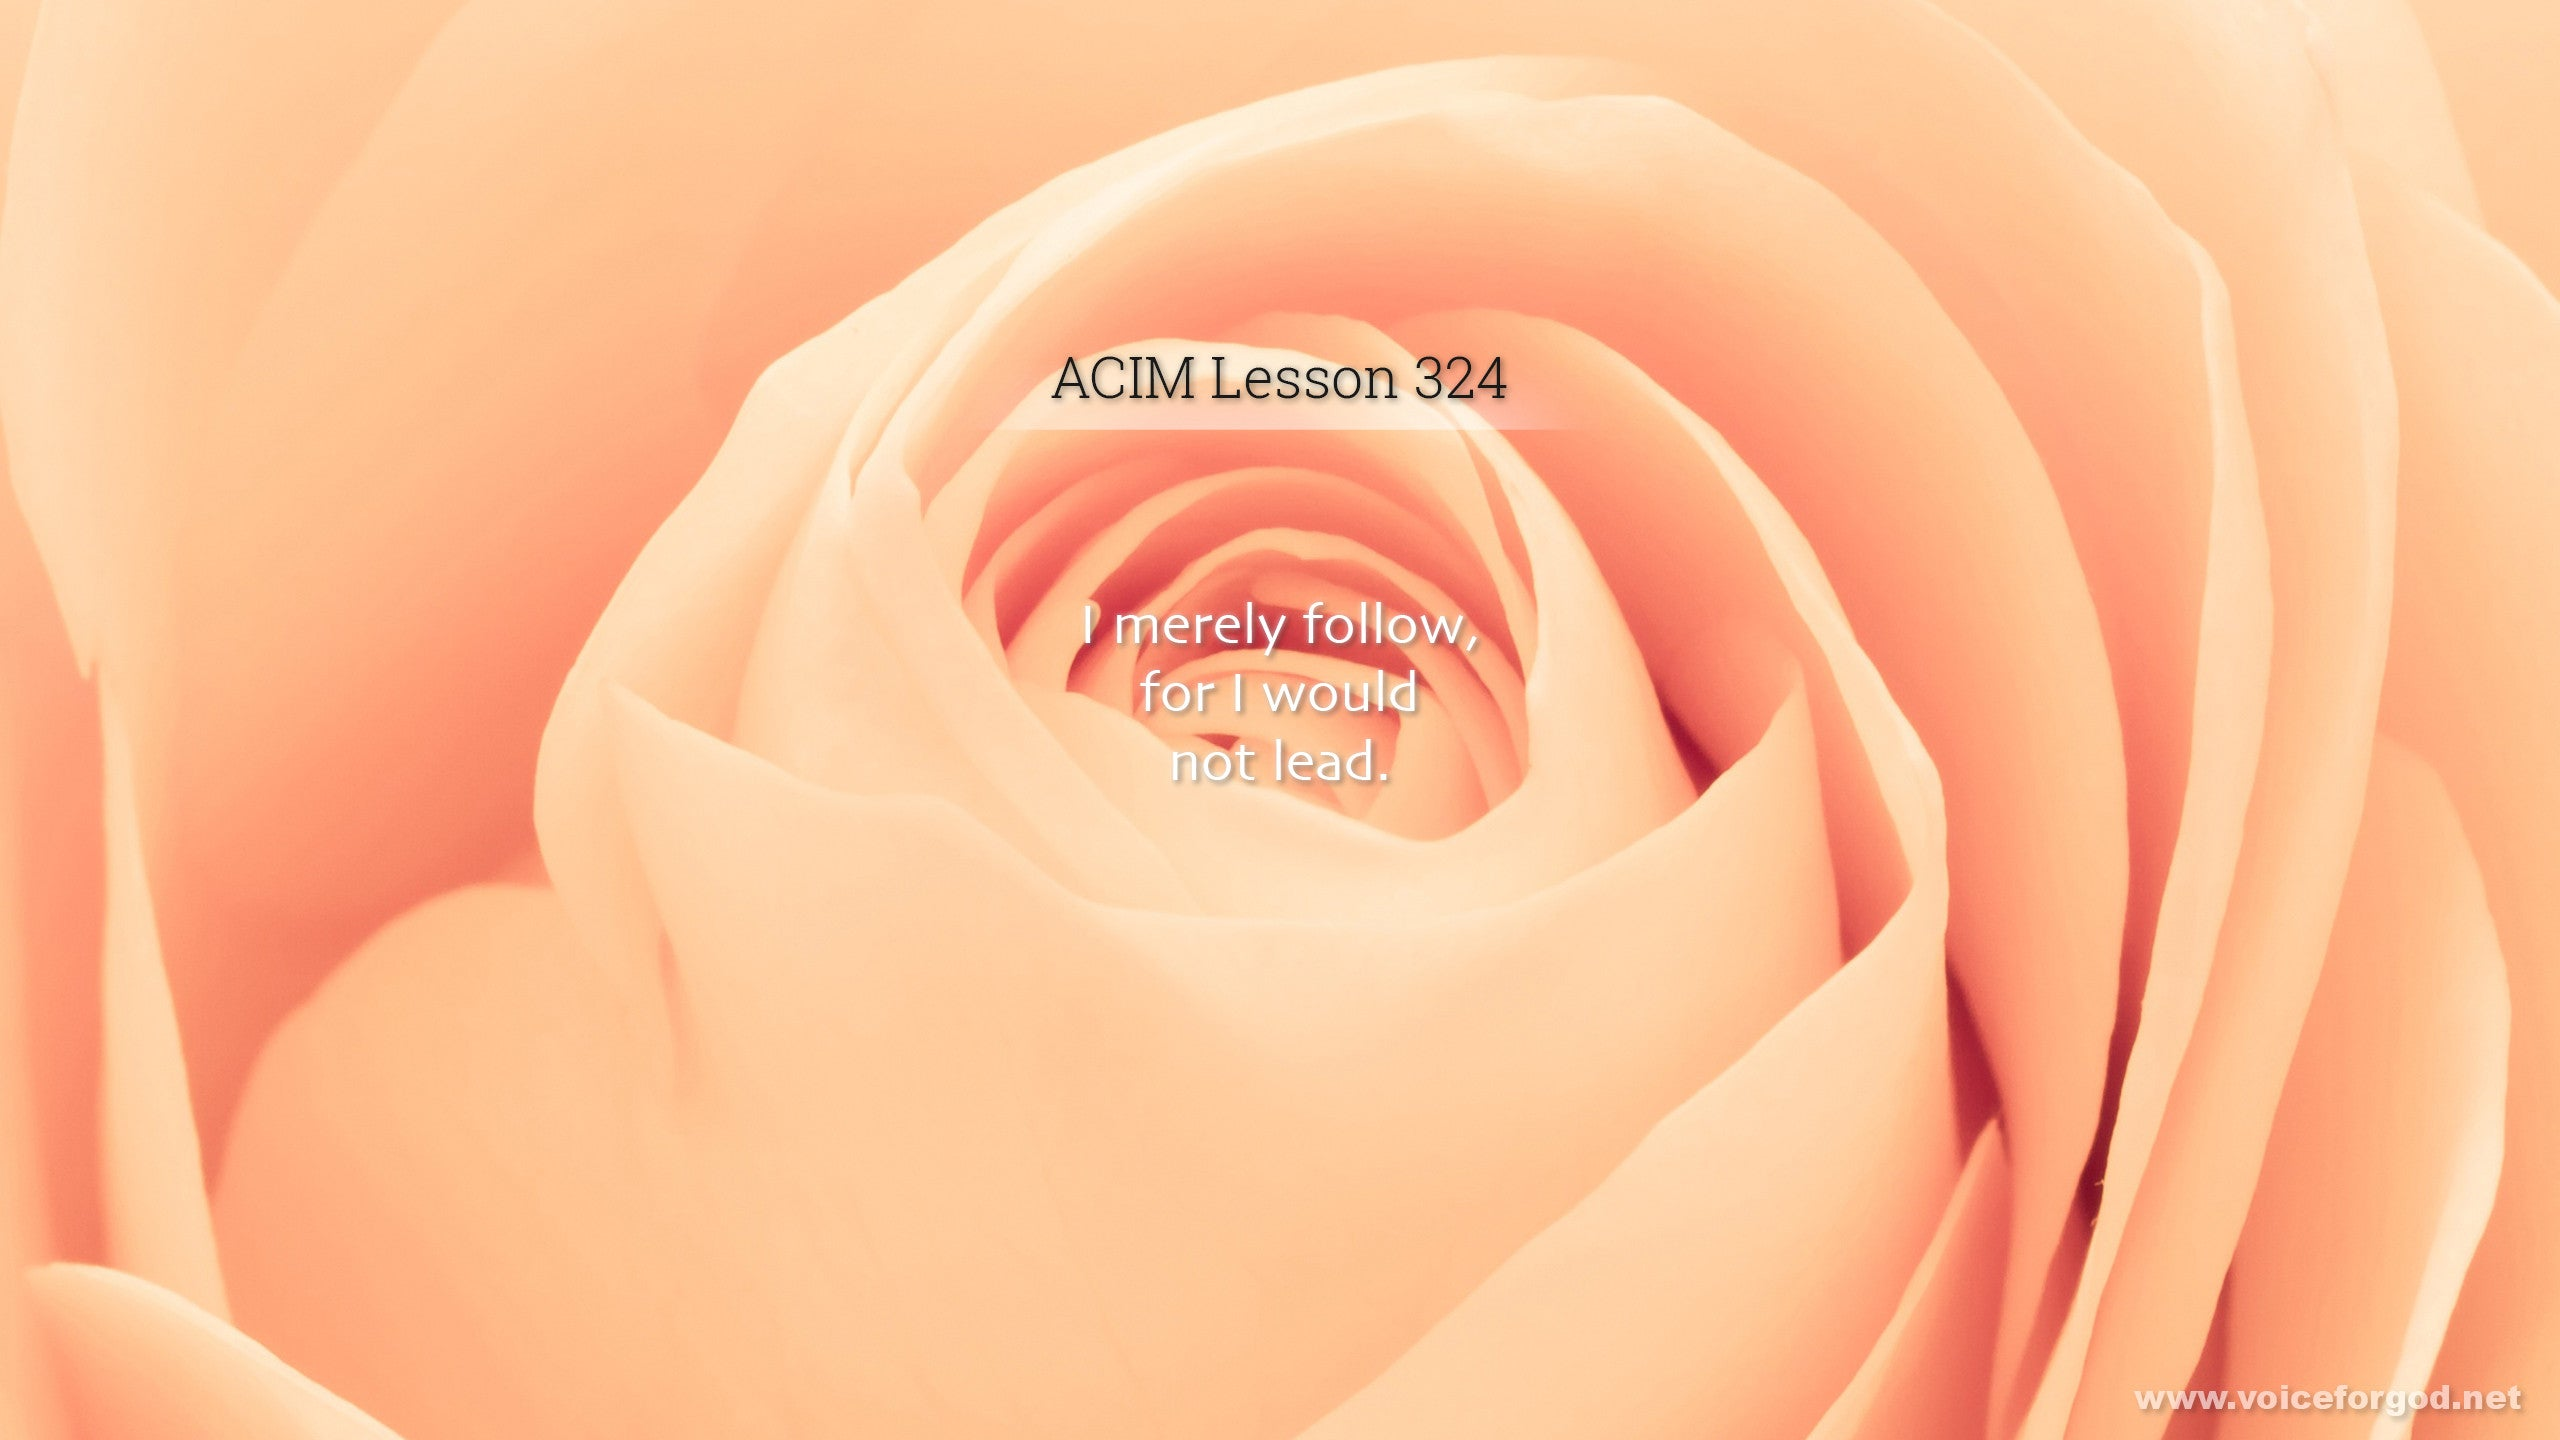 ACIM Lesson 324 - A Course in Miracles Workbook Lesson 324